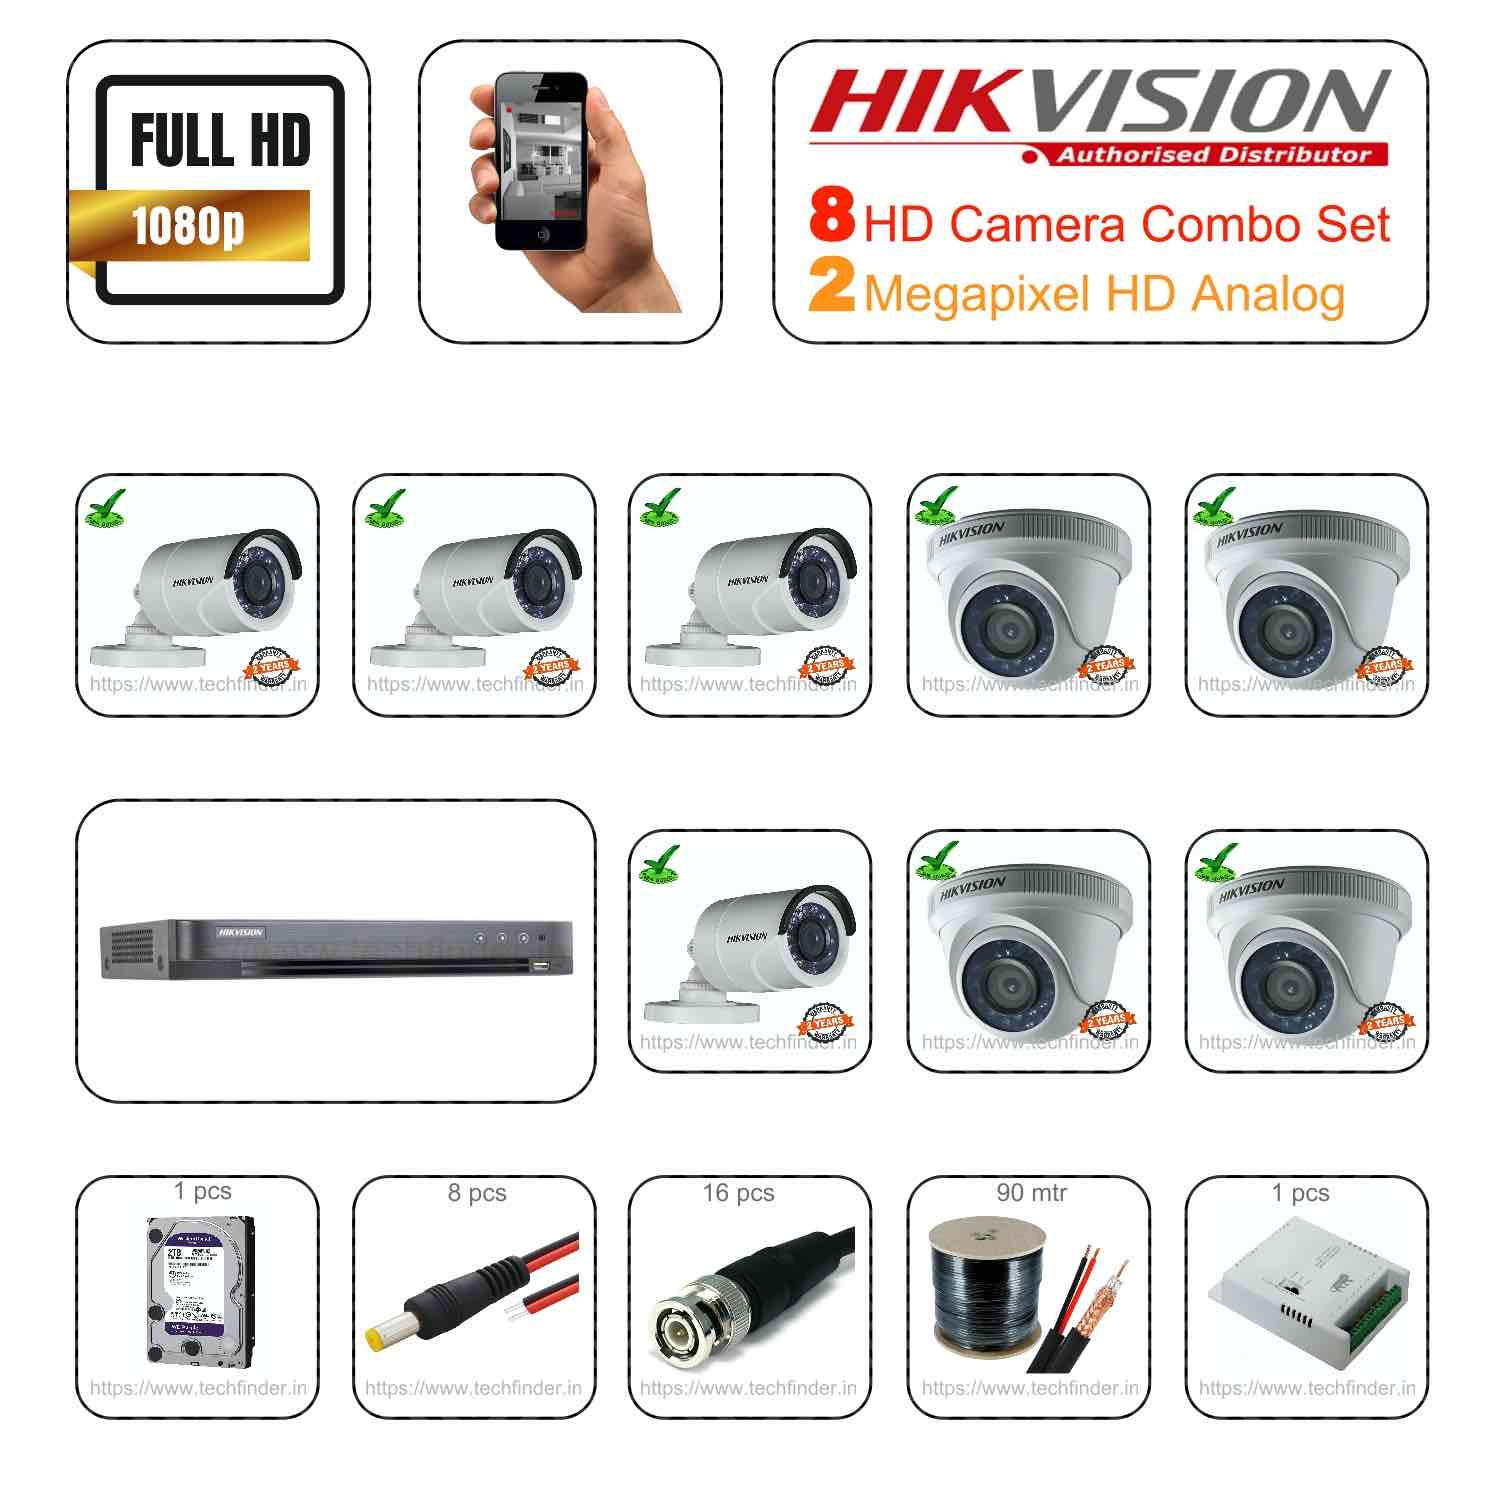 Hikvision 2mp HD 8 CCTV Camera Setup Combo Set